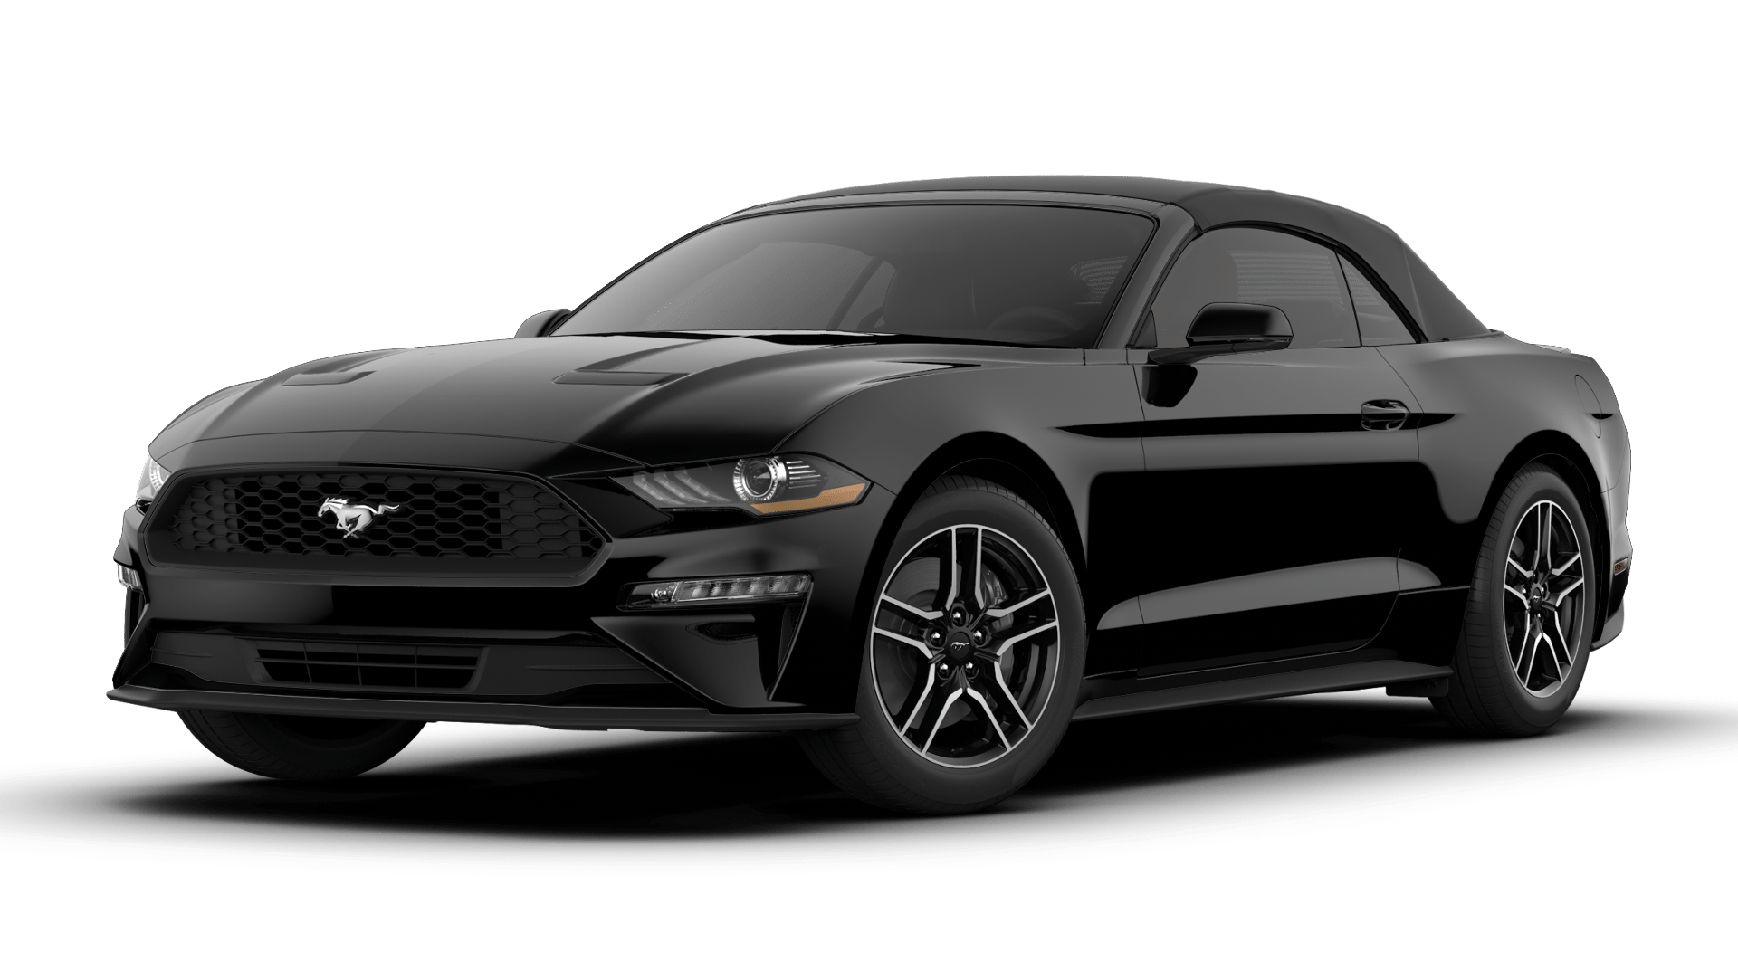 Ford Mustang 2019 EcoBoost® Premium Convertible